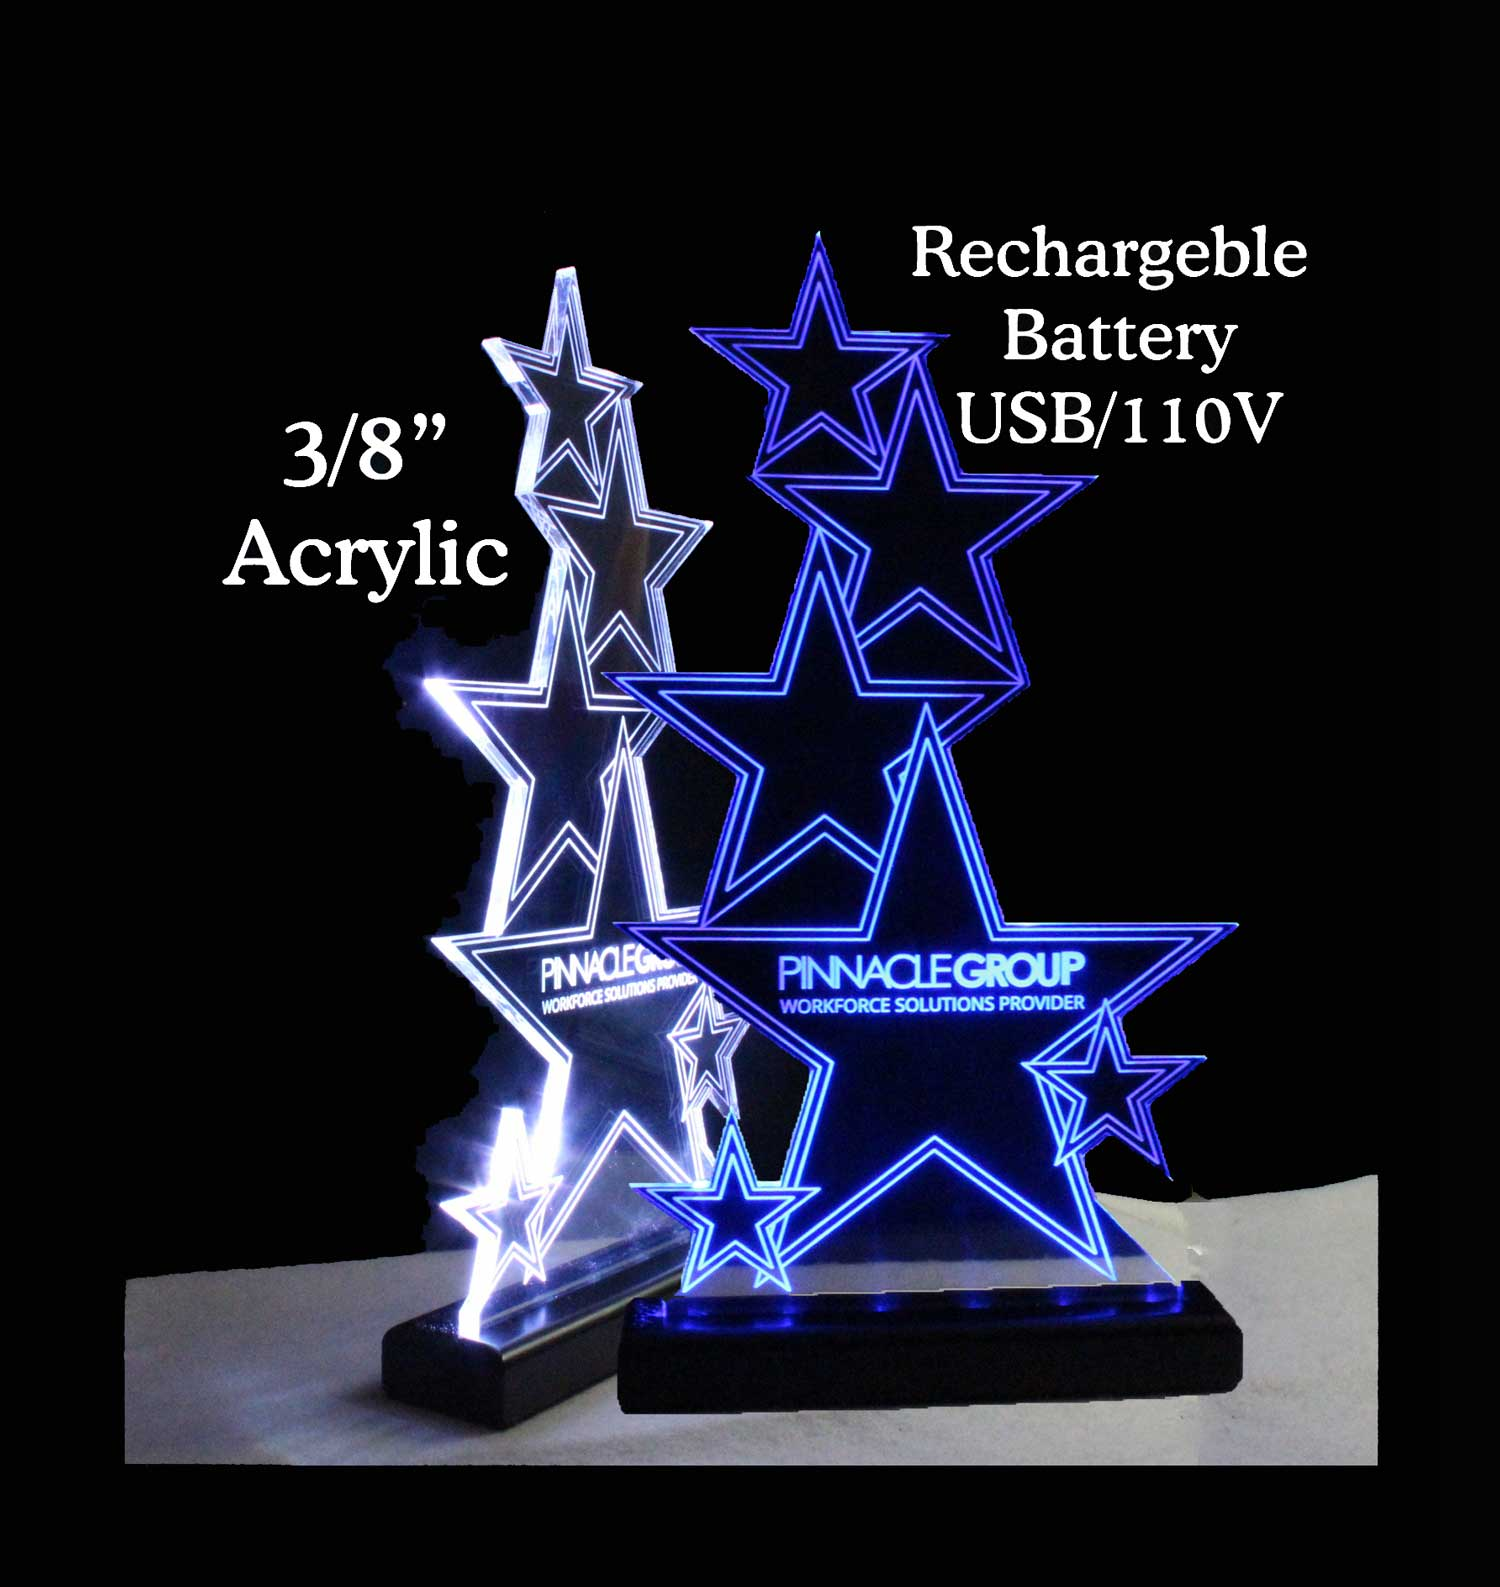 Rechargeable Battery Operated LED Awards, Name Plates, Trophies,  Desk Signs